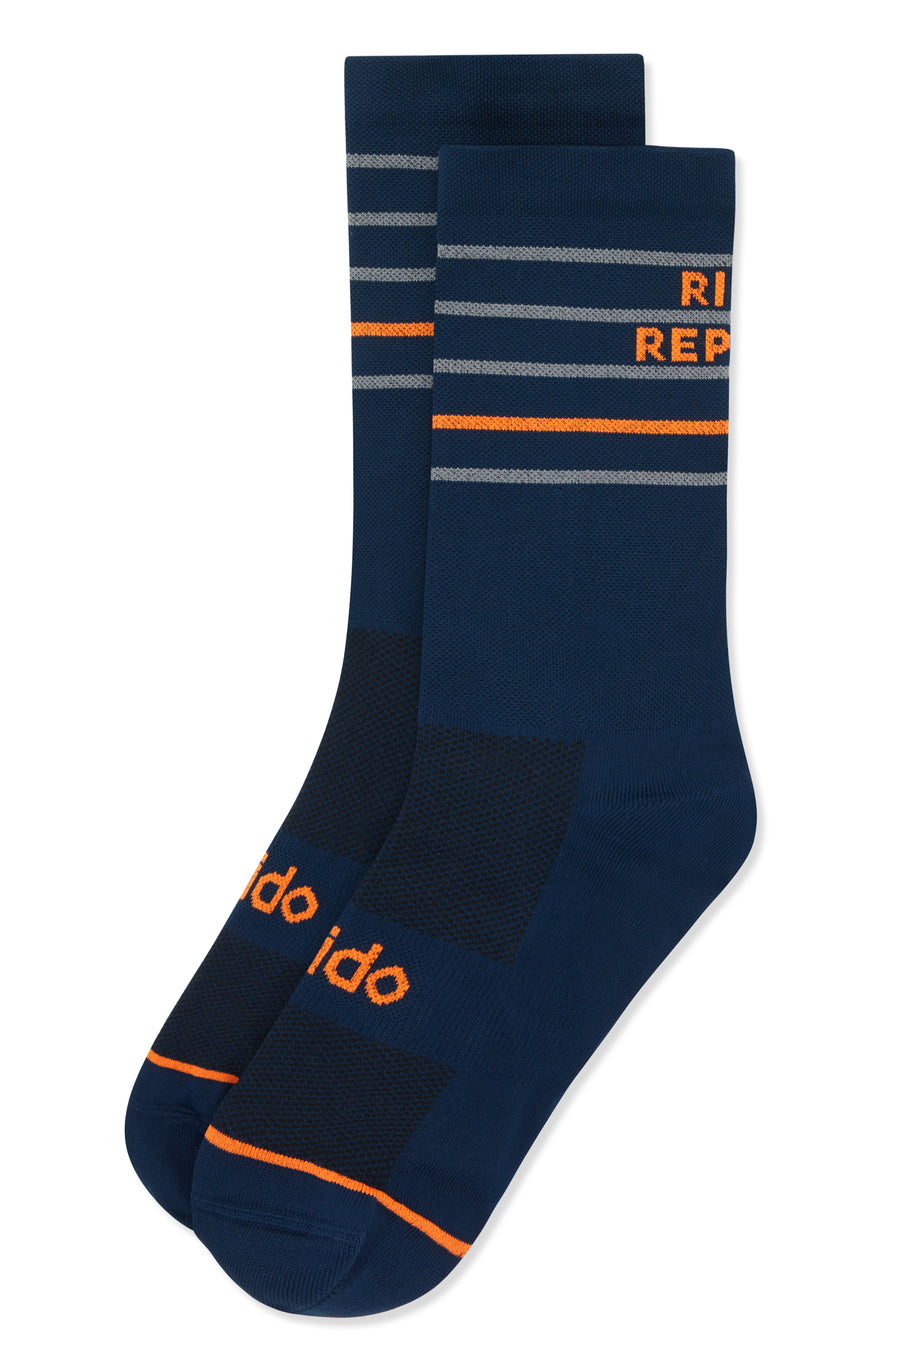 Navy Cycling Socks with Eat Sleep Ride Repeat on the back